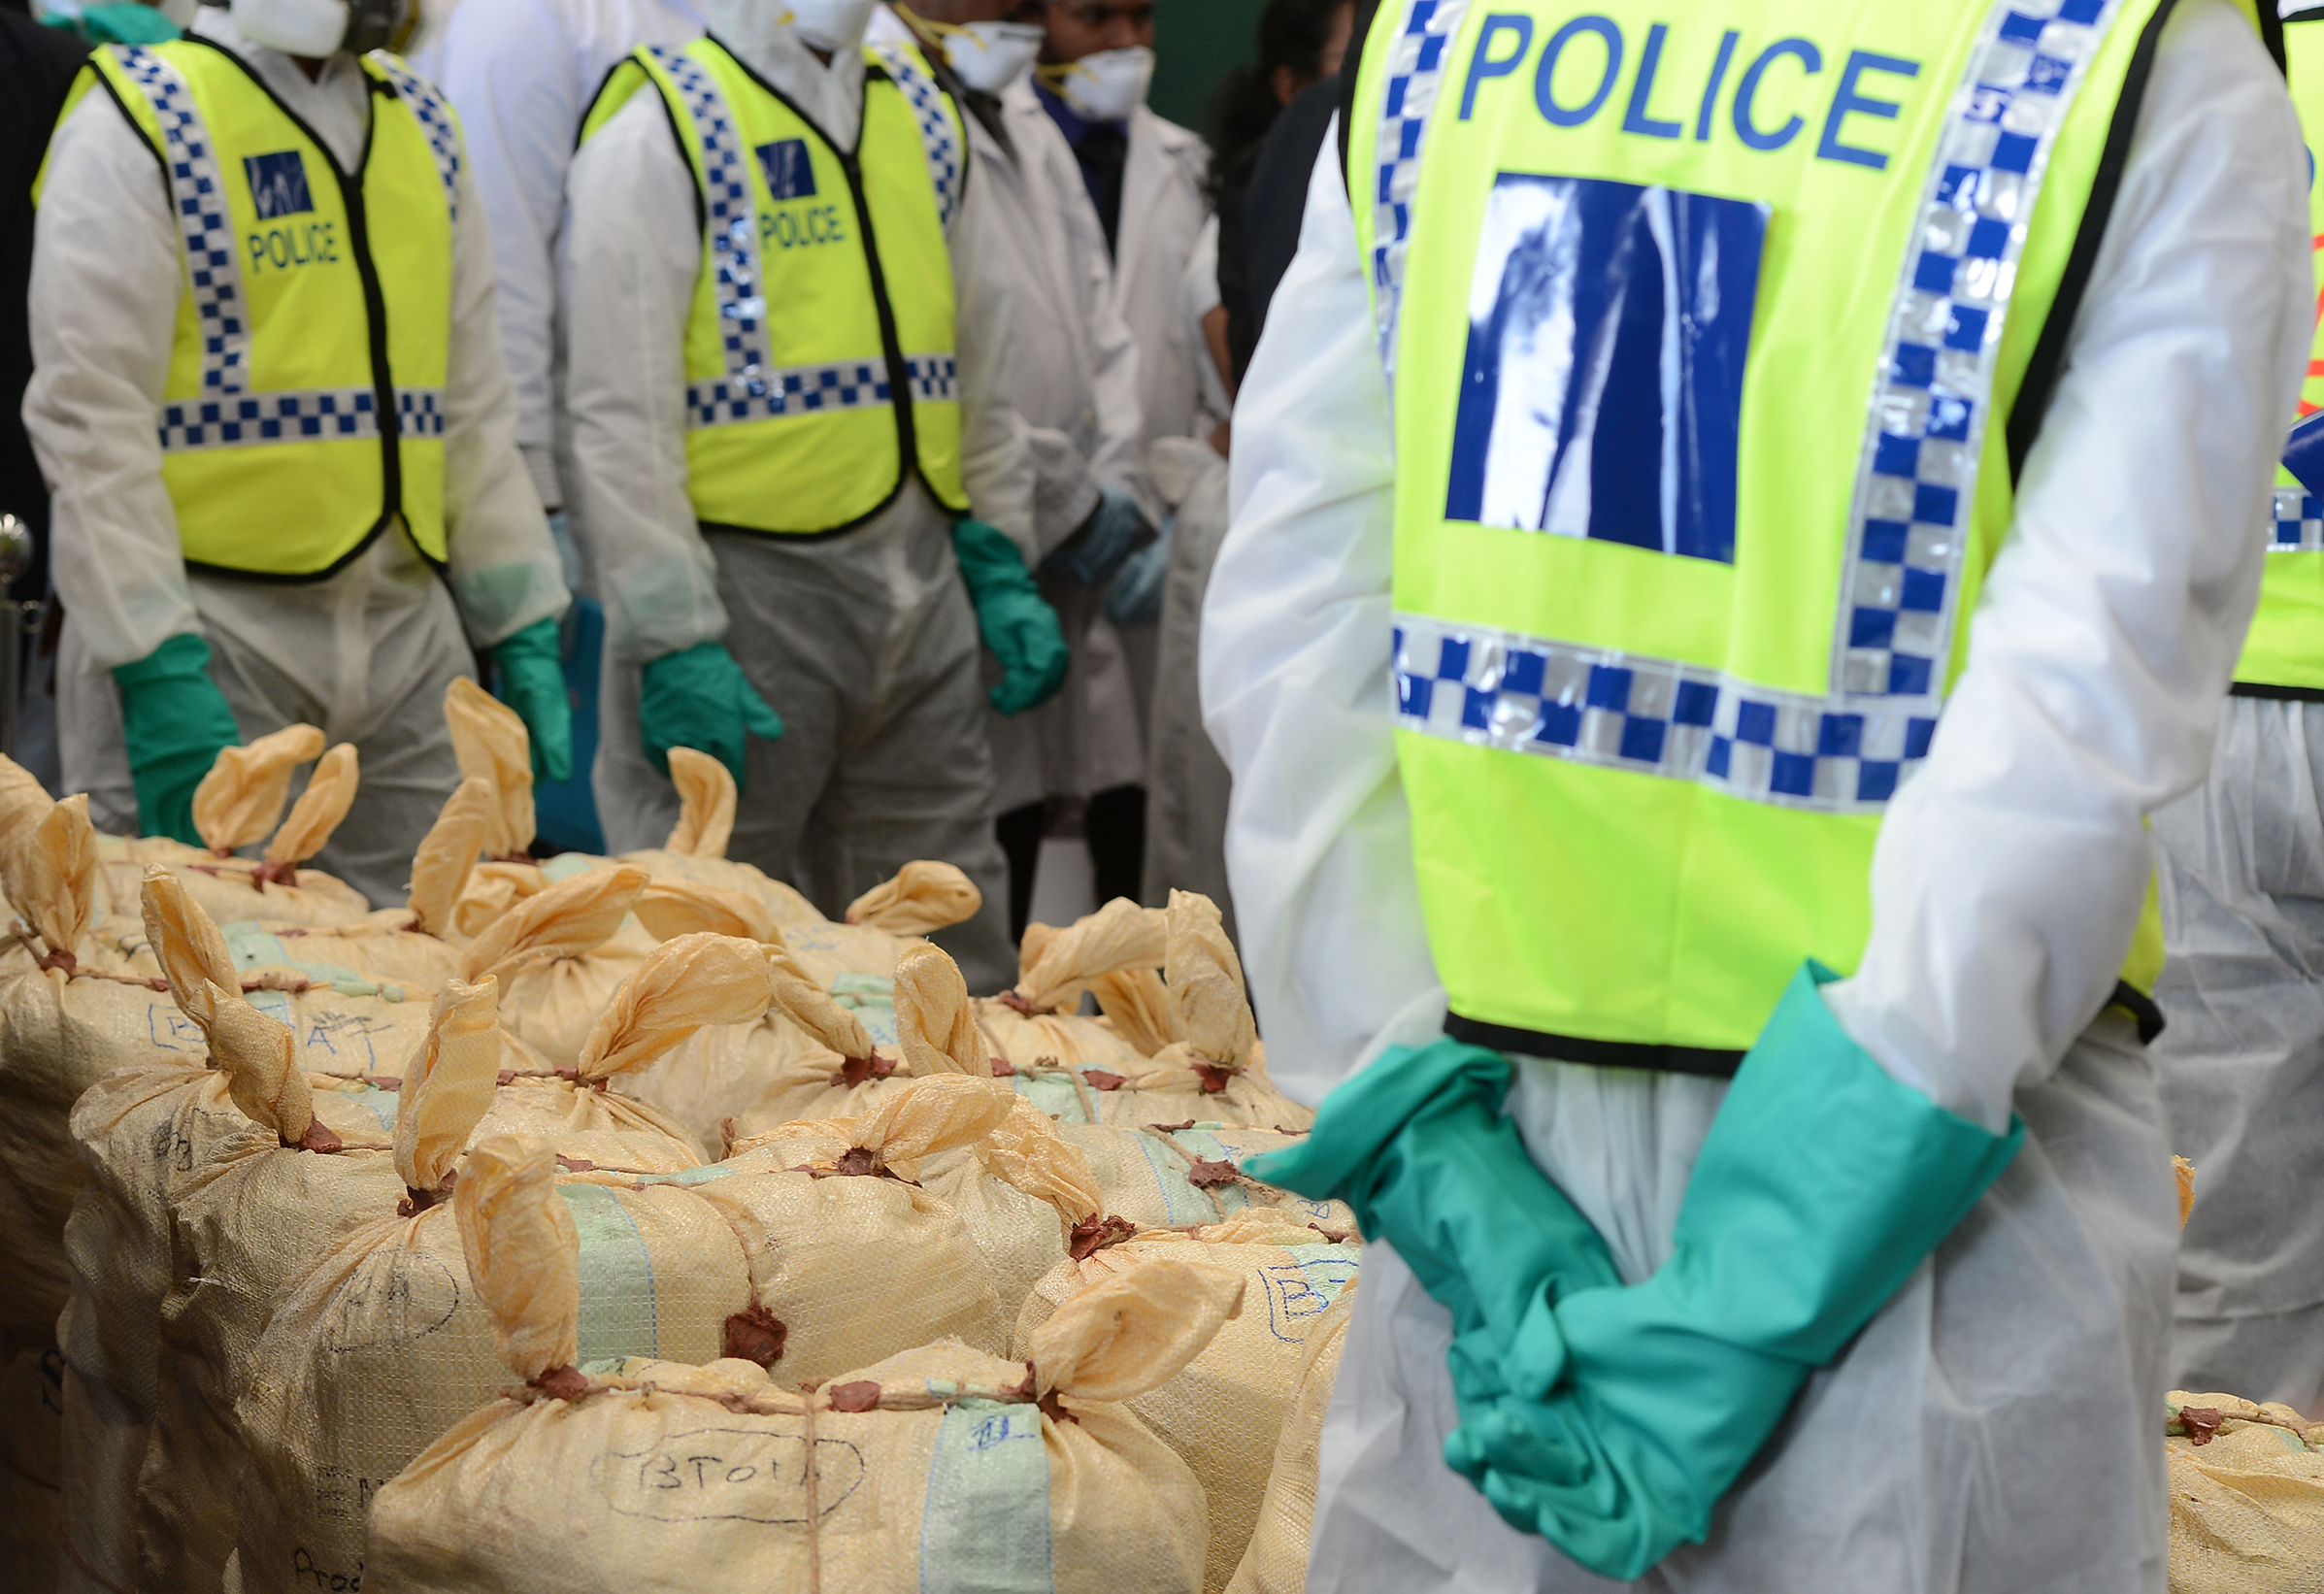 Sri Lankan police personnel prepare seized cocaine to be destroyed under judicial supervision in Katunayake on January 15, 2018.